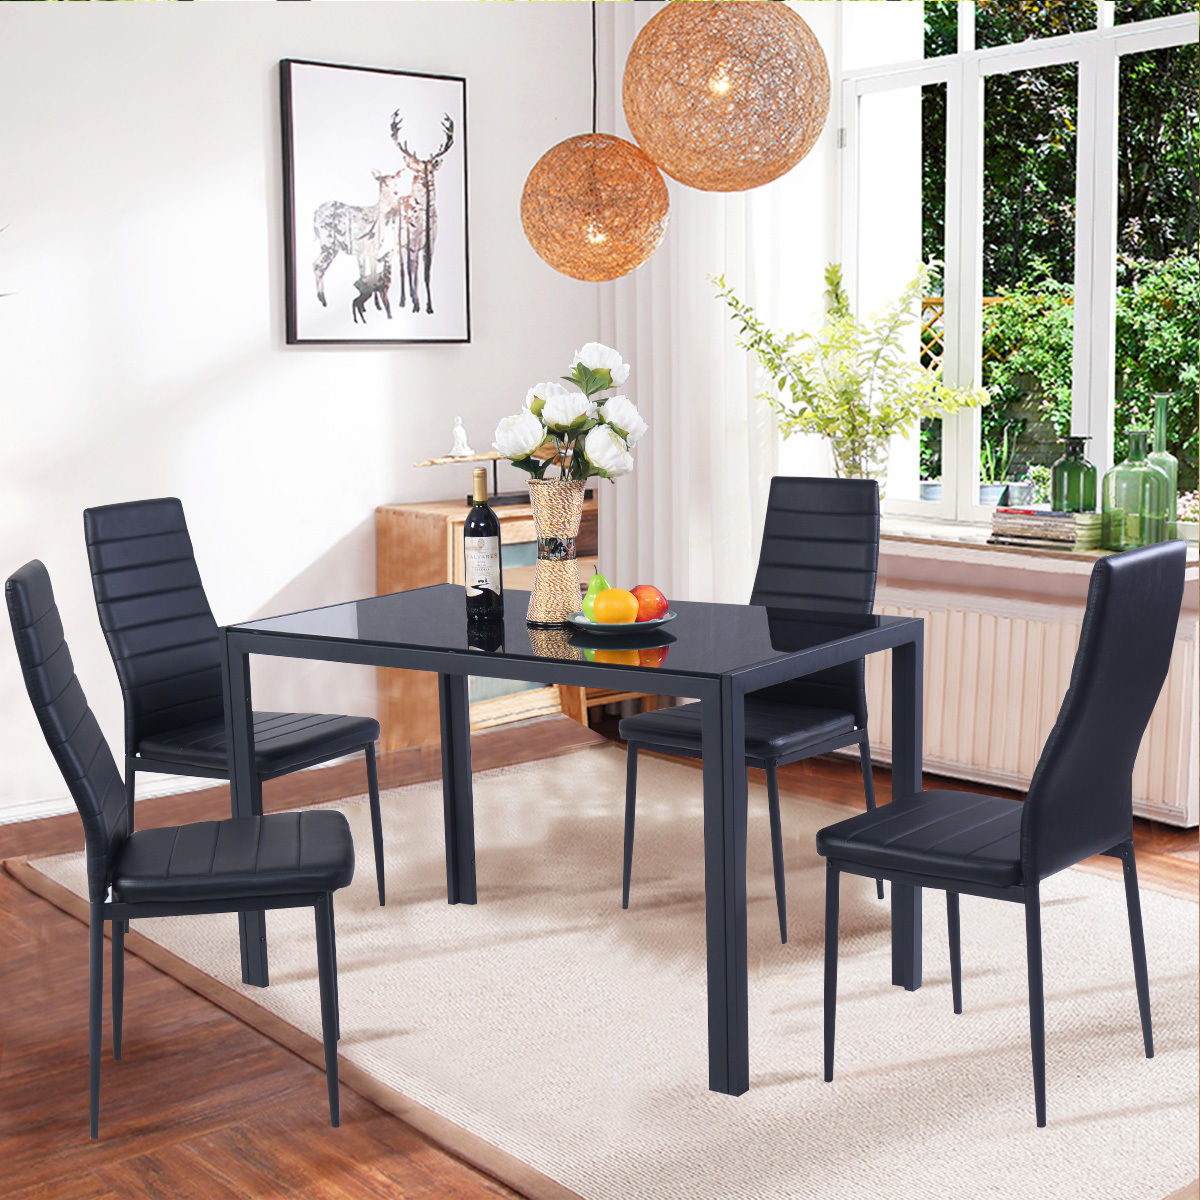 Product Image Costway 5 Piece Kitchen Dining Set Glass Metal Table And 4  Chairs Breakfast Furniture